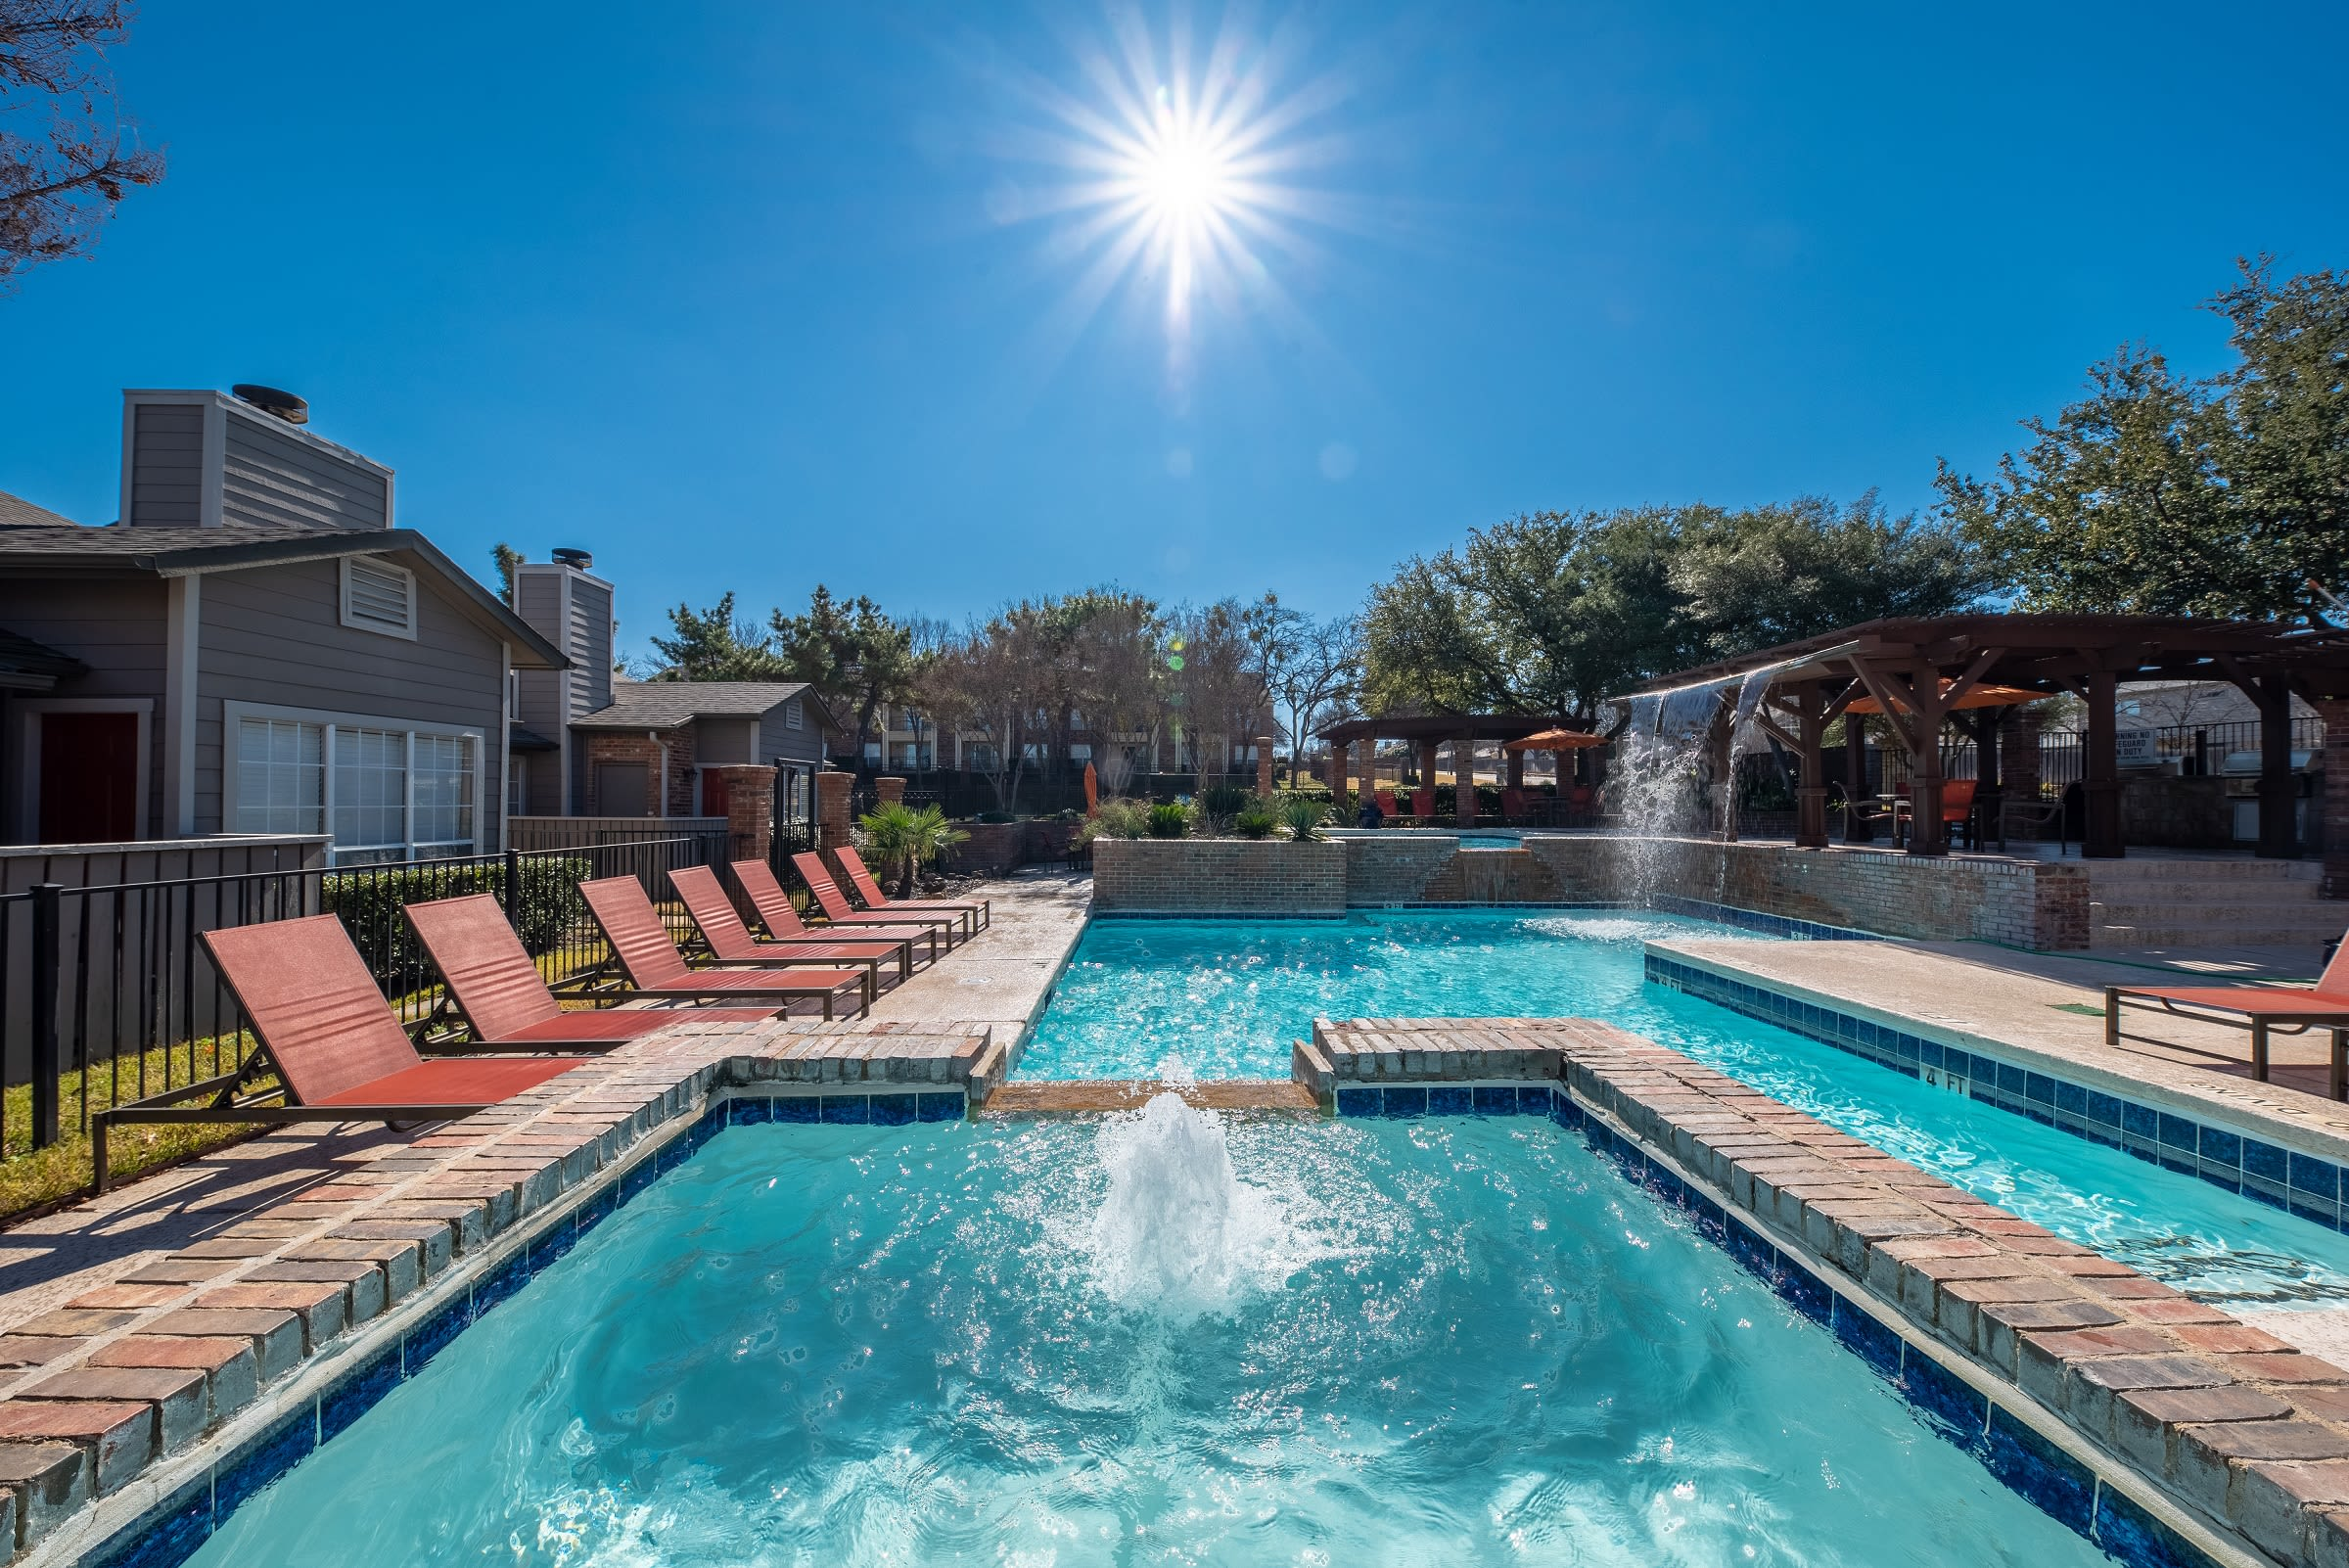 Lounge chairs poolside at Village Green of Bear Creek in Euless, Texas